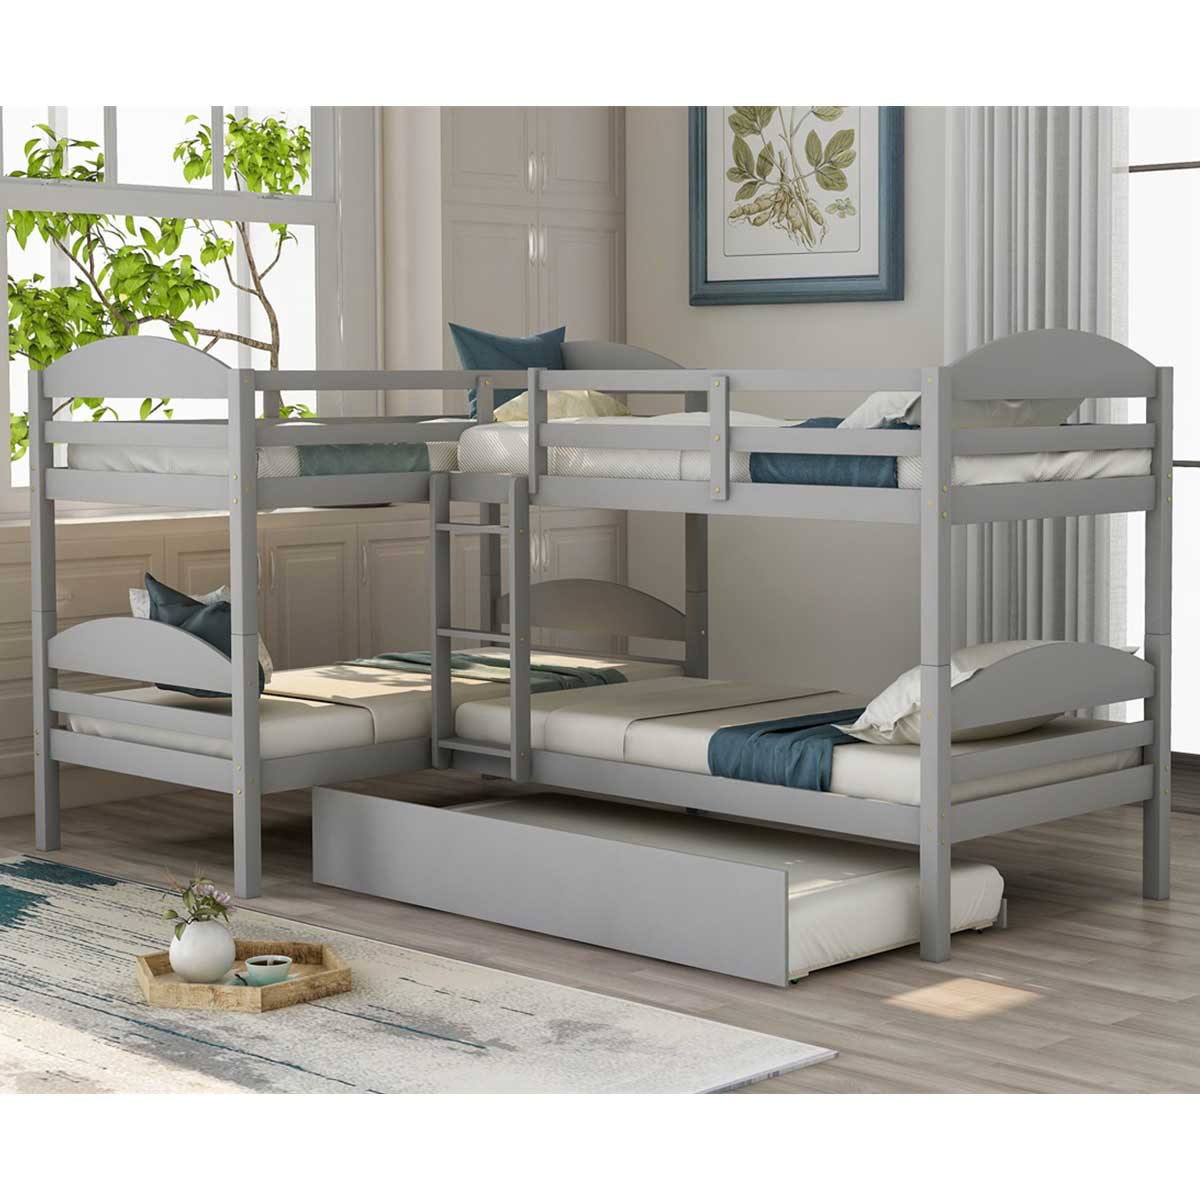 Picture of: Modernluxe Twin L Shaped Triple Bunk Bed With Trundle And Ladder Walmart Com Walmart Com